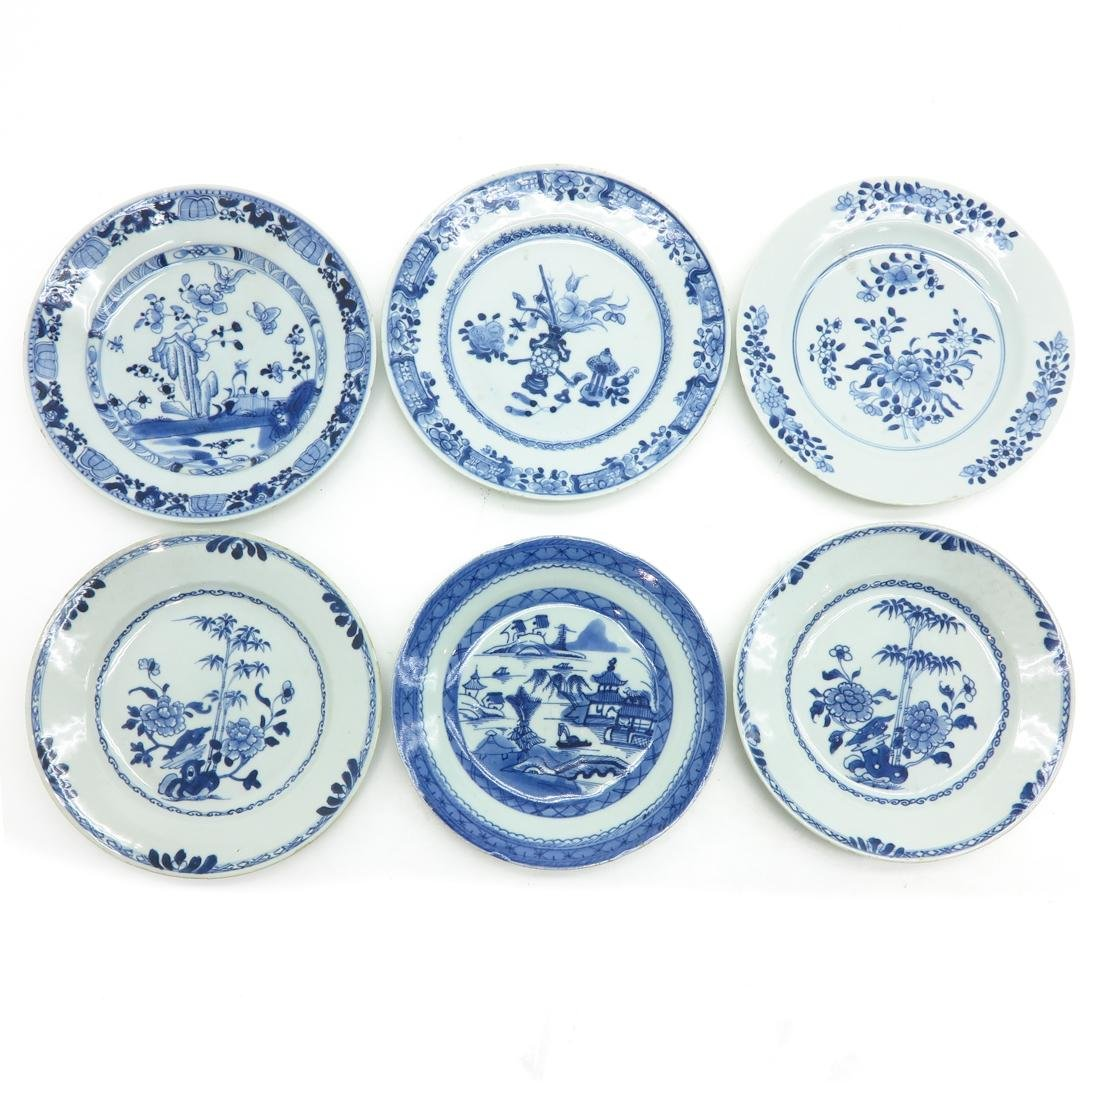 Diverse Lot of Porcelain - 9